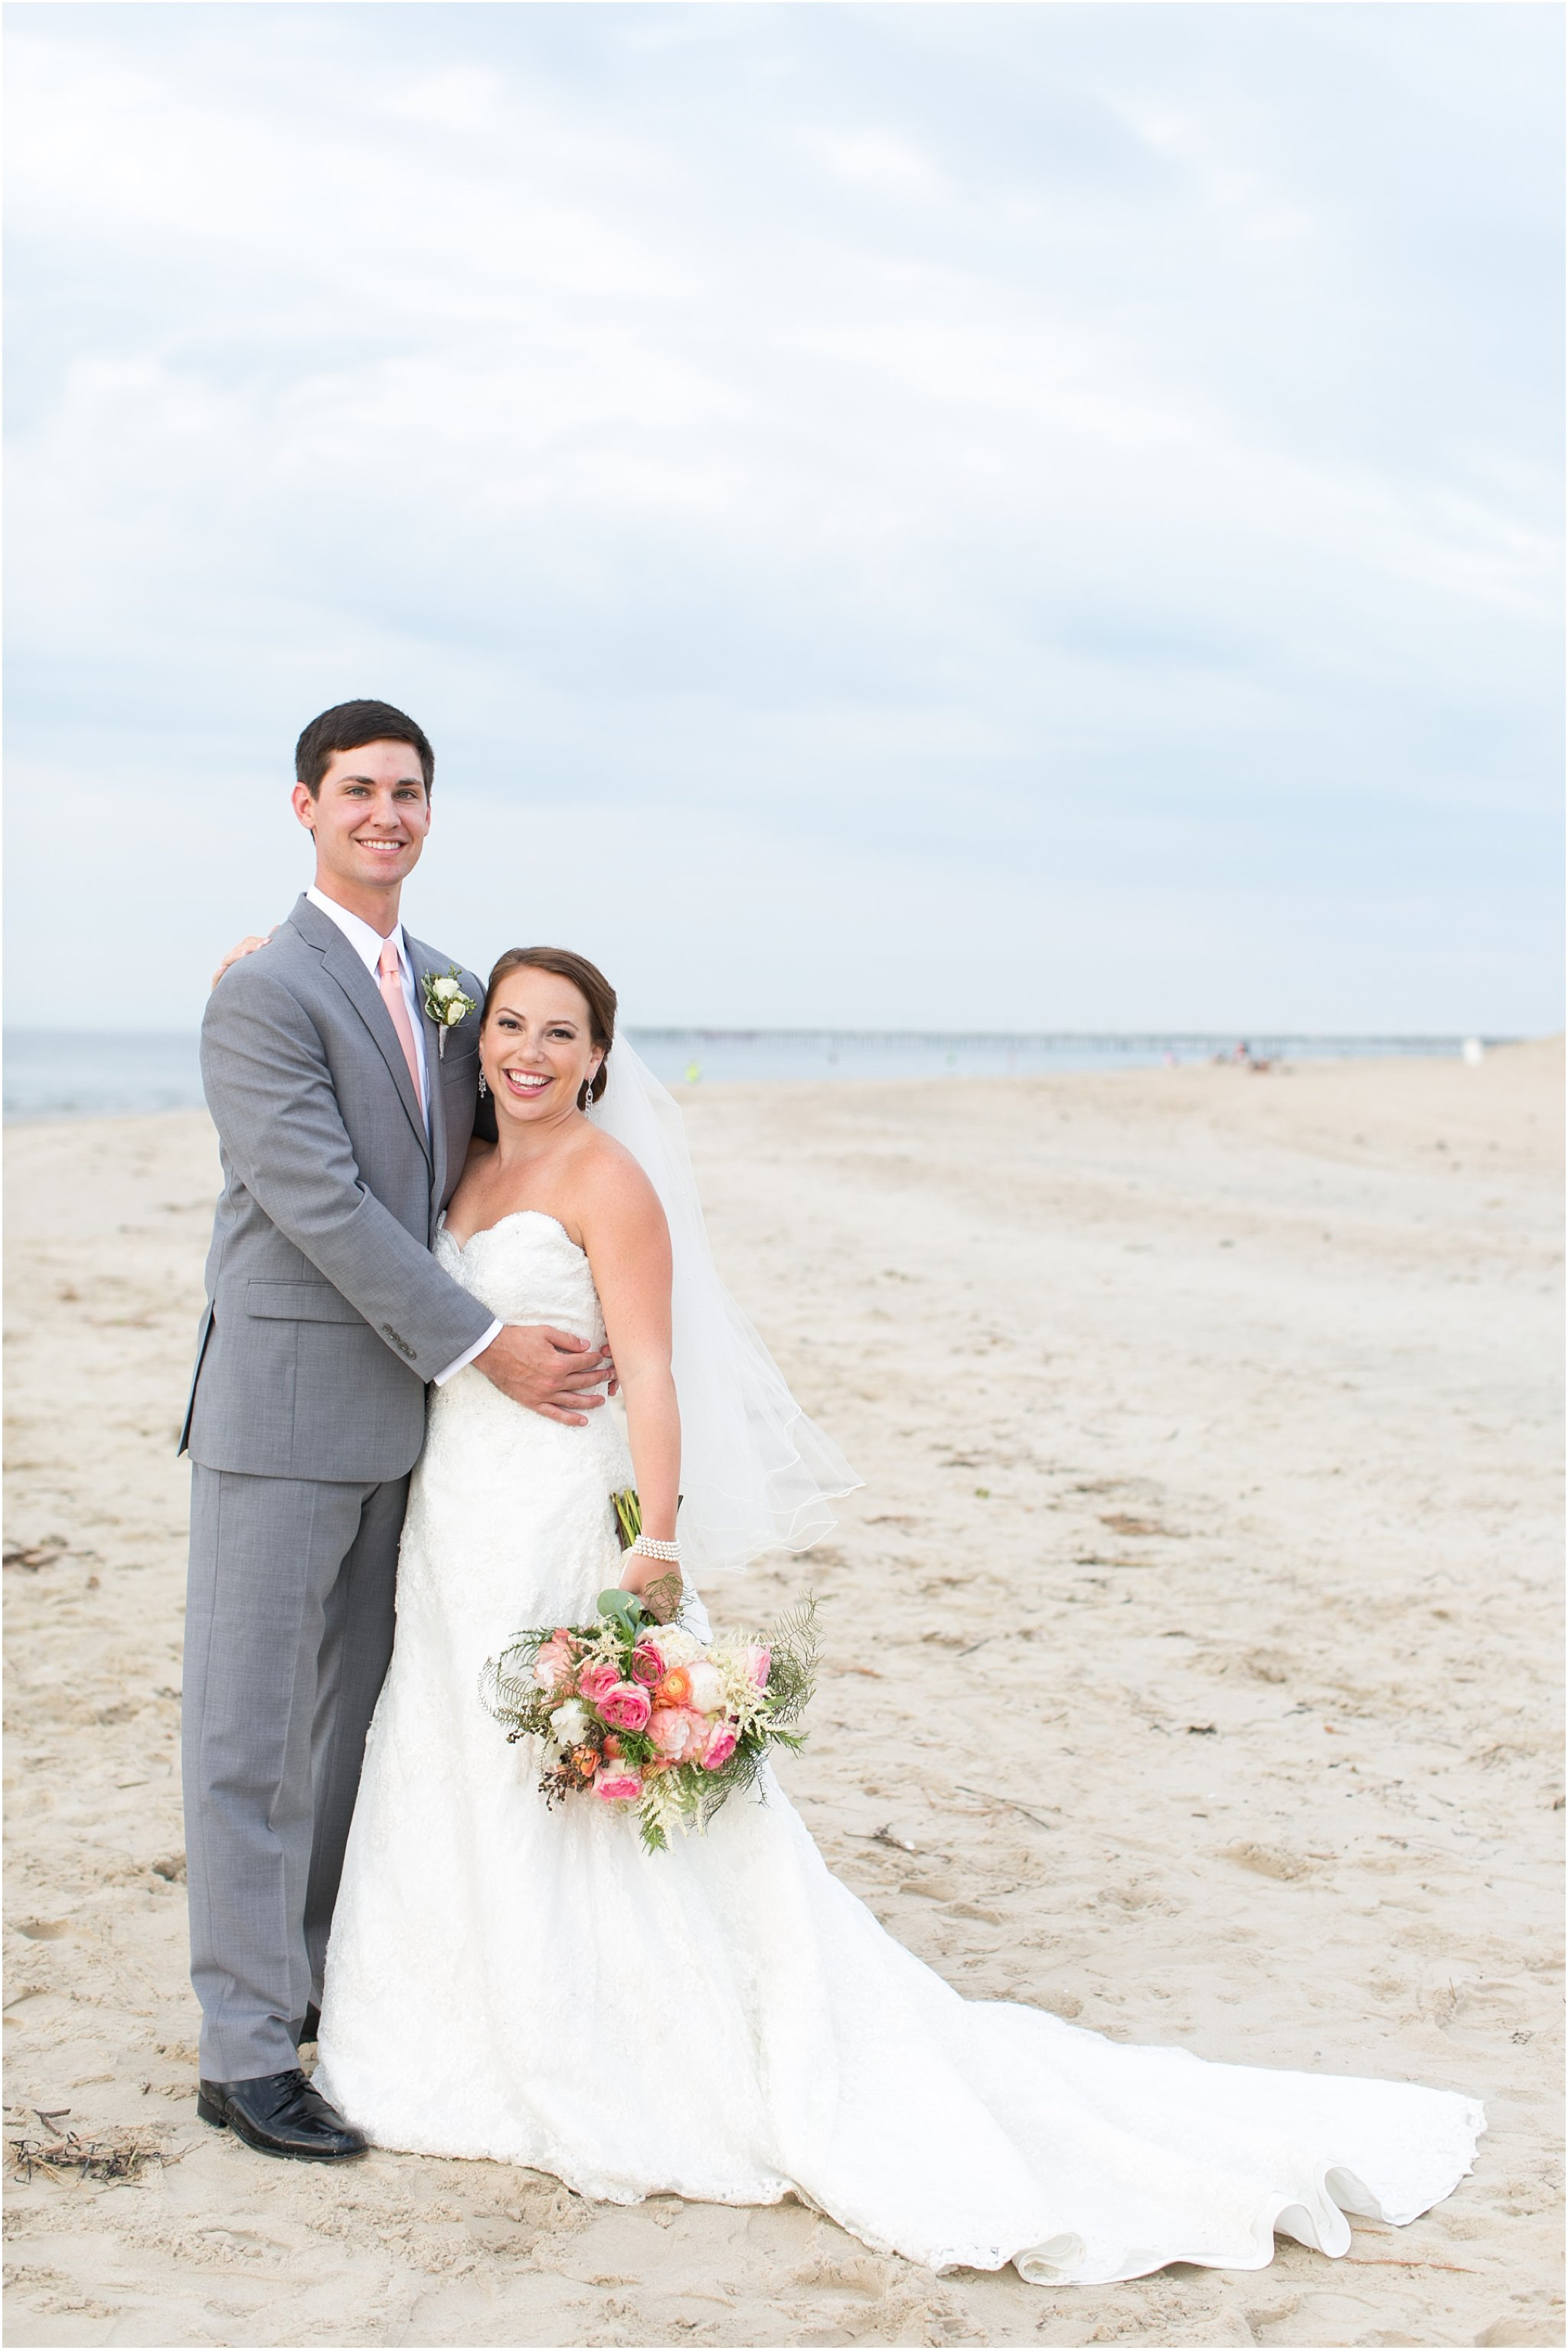 jessica_ryan_photography_wedding_photography_virginiabeach_virginia_candid_authentic_wedding_portraits_marina_shores_yacht_club_chesapeake_bay_1871